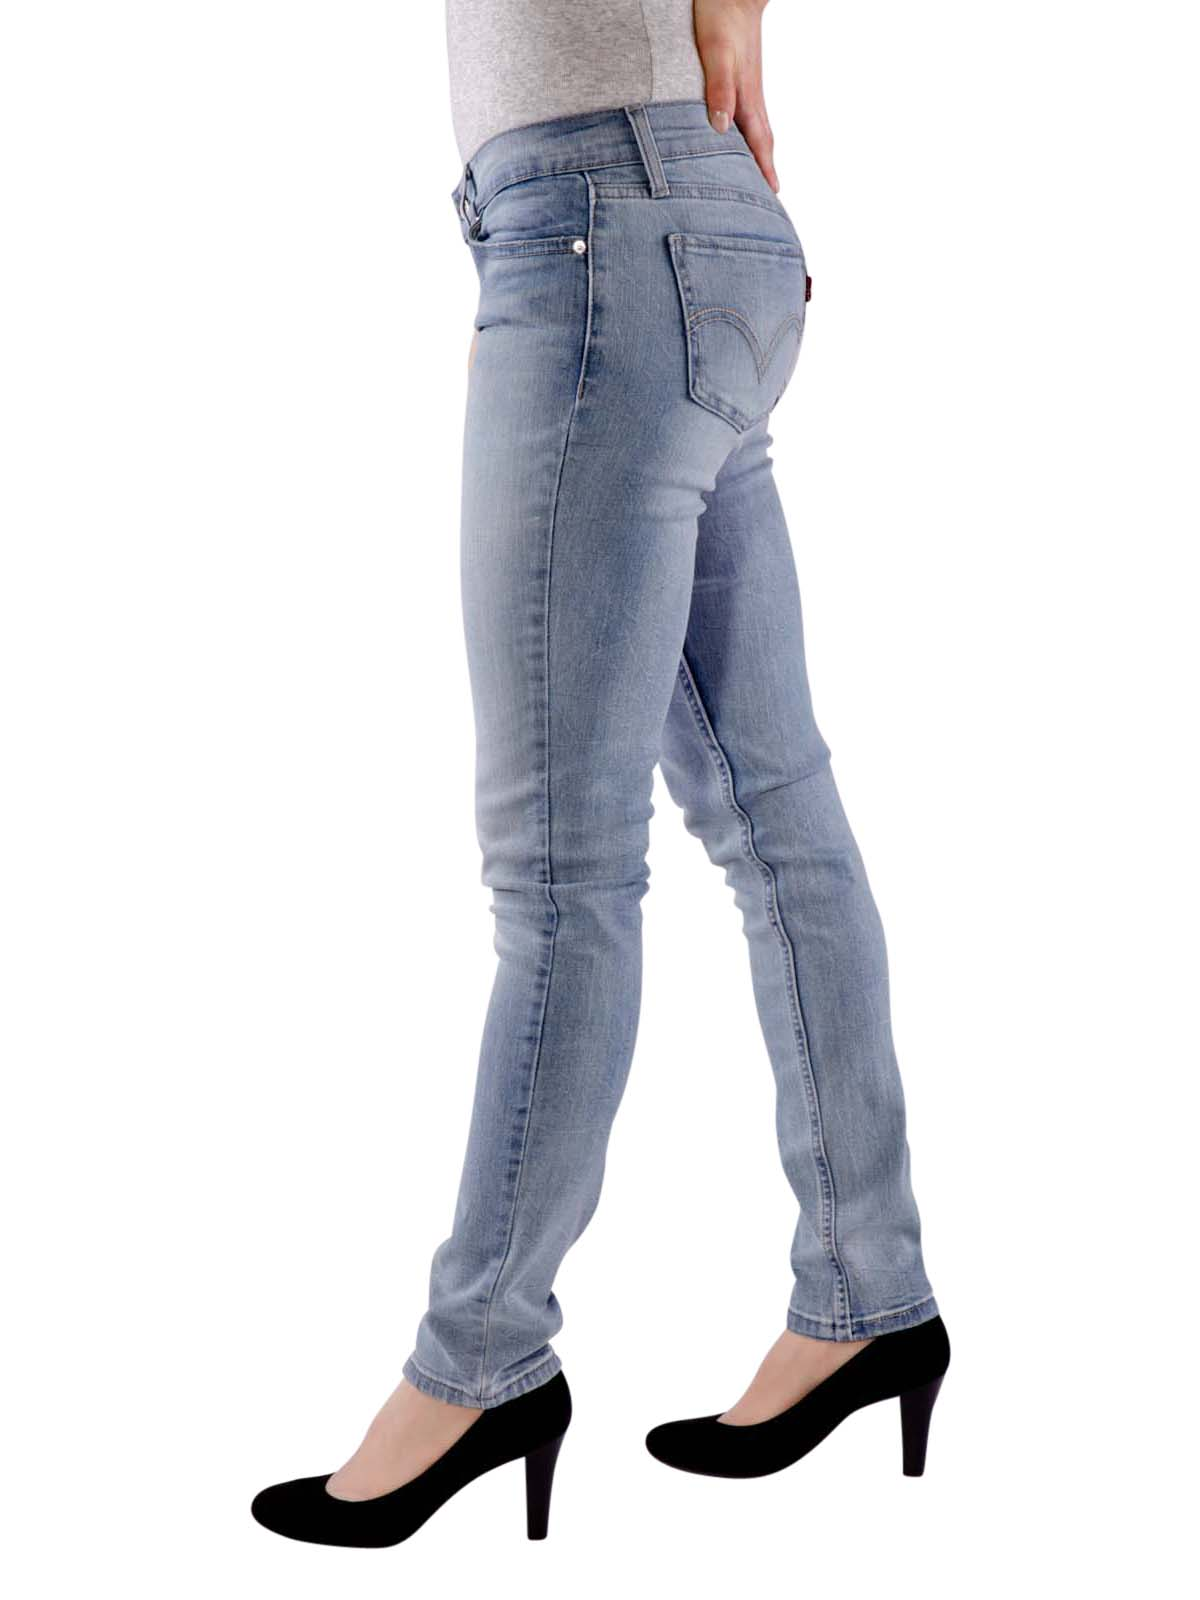 McJeans.ch Sofortige Zustellung | Levi's 524 Too Superlow